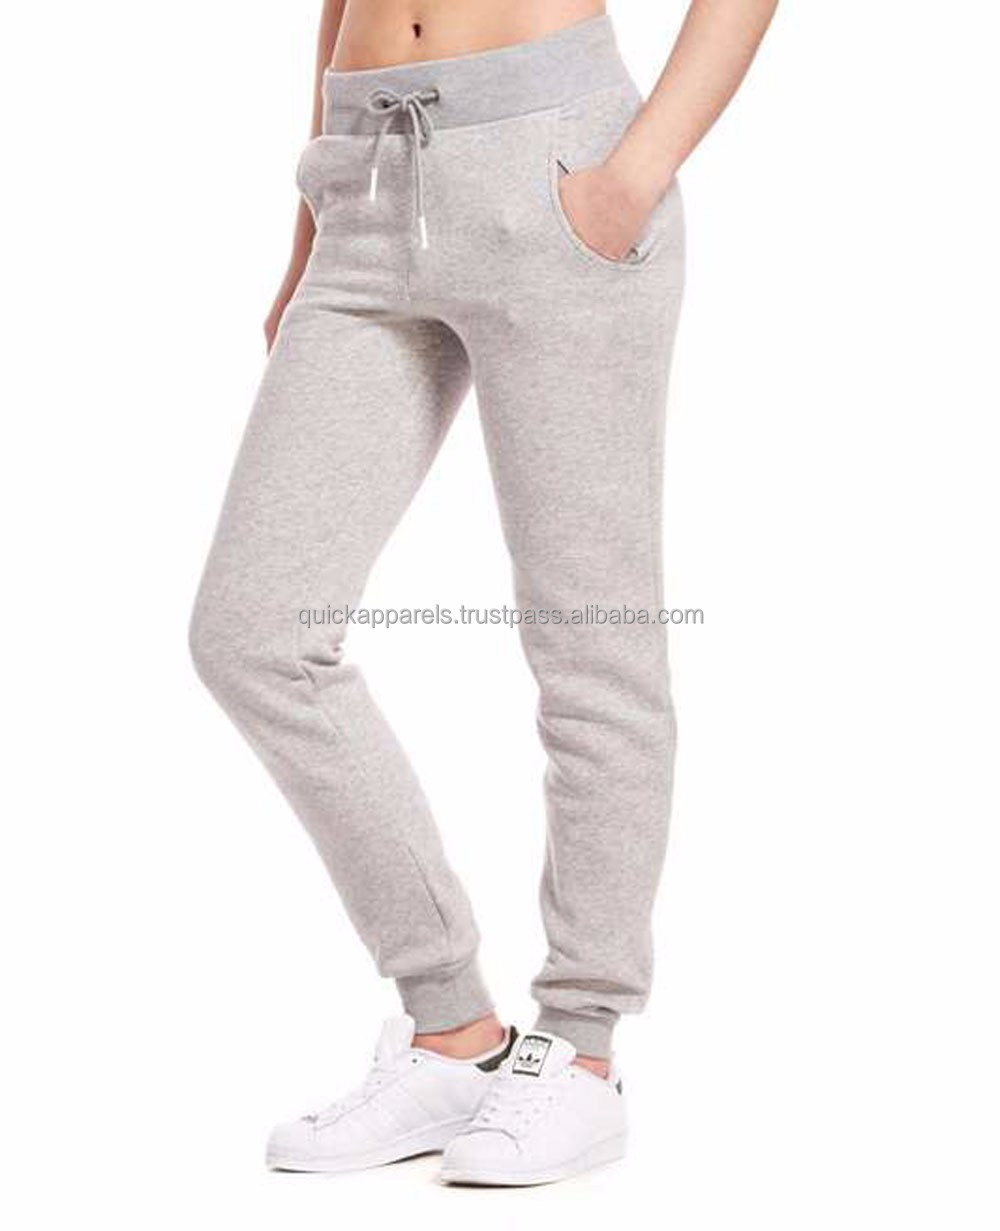 custom sports fleece jogger pants mens wholesale sweatpants